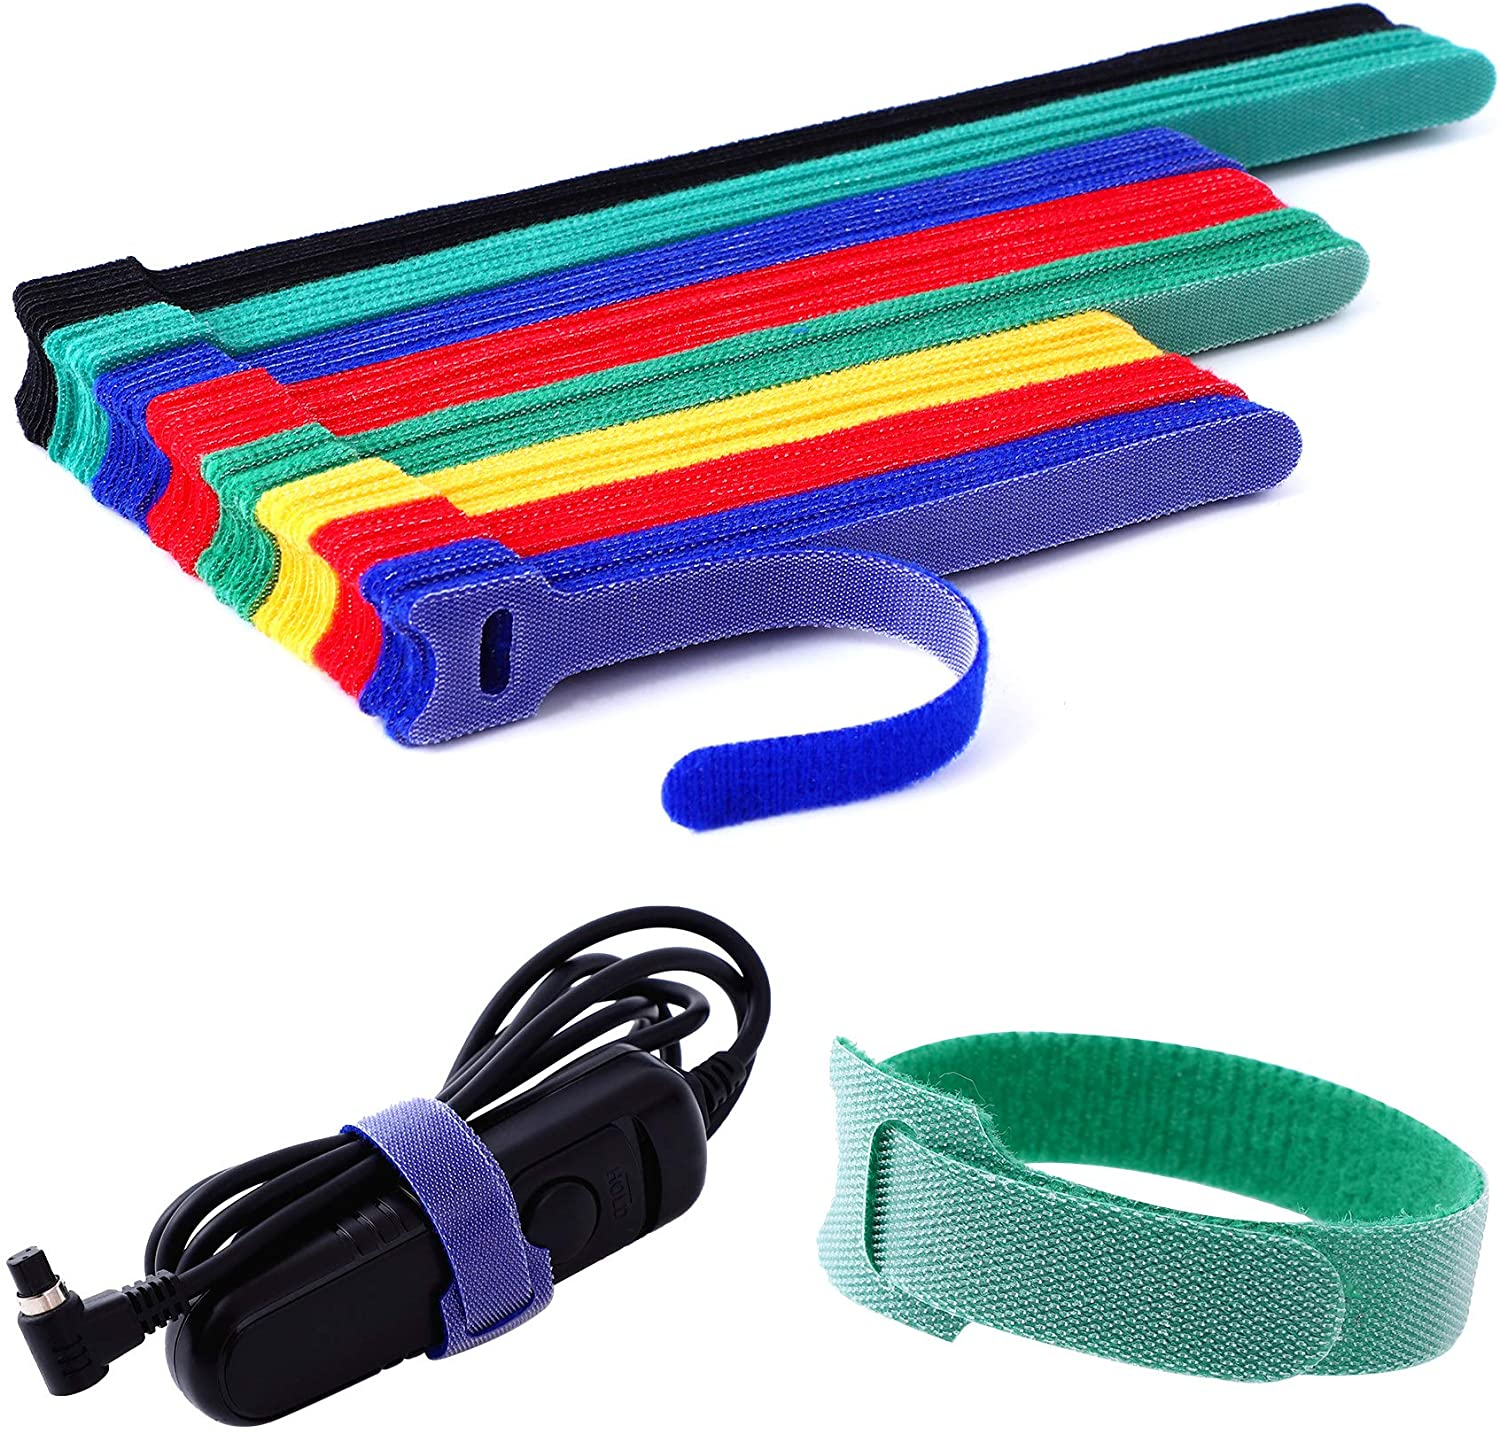 Ainuowei 80 pcs Reusable Fastening Cable Ties 3 Sizes 6/8/10 inch Adjustable Cord Ties Cord Straps Cable Organizer Hook and Loop Ties for Cord Management,5 Colors: Home Improvement